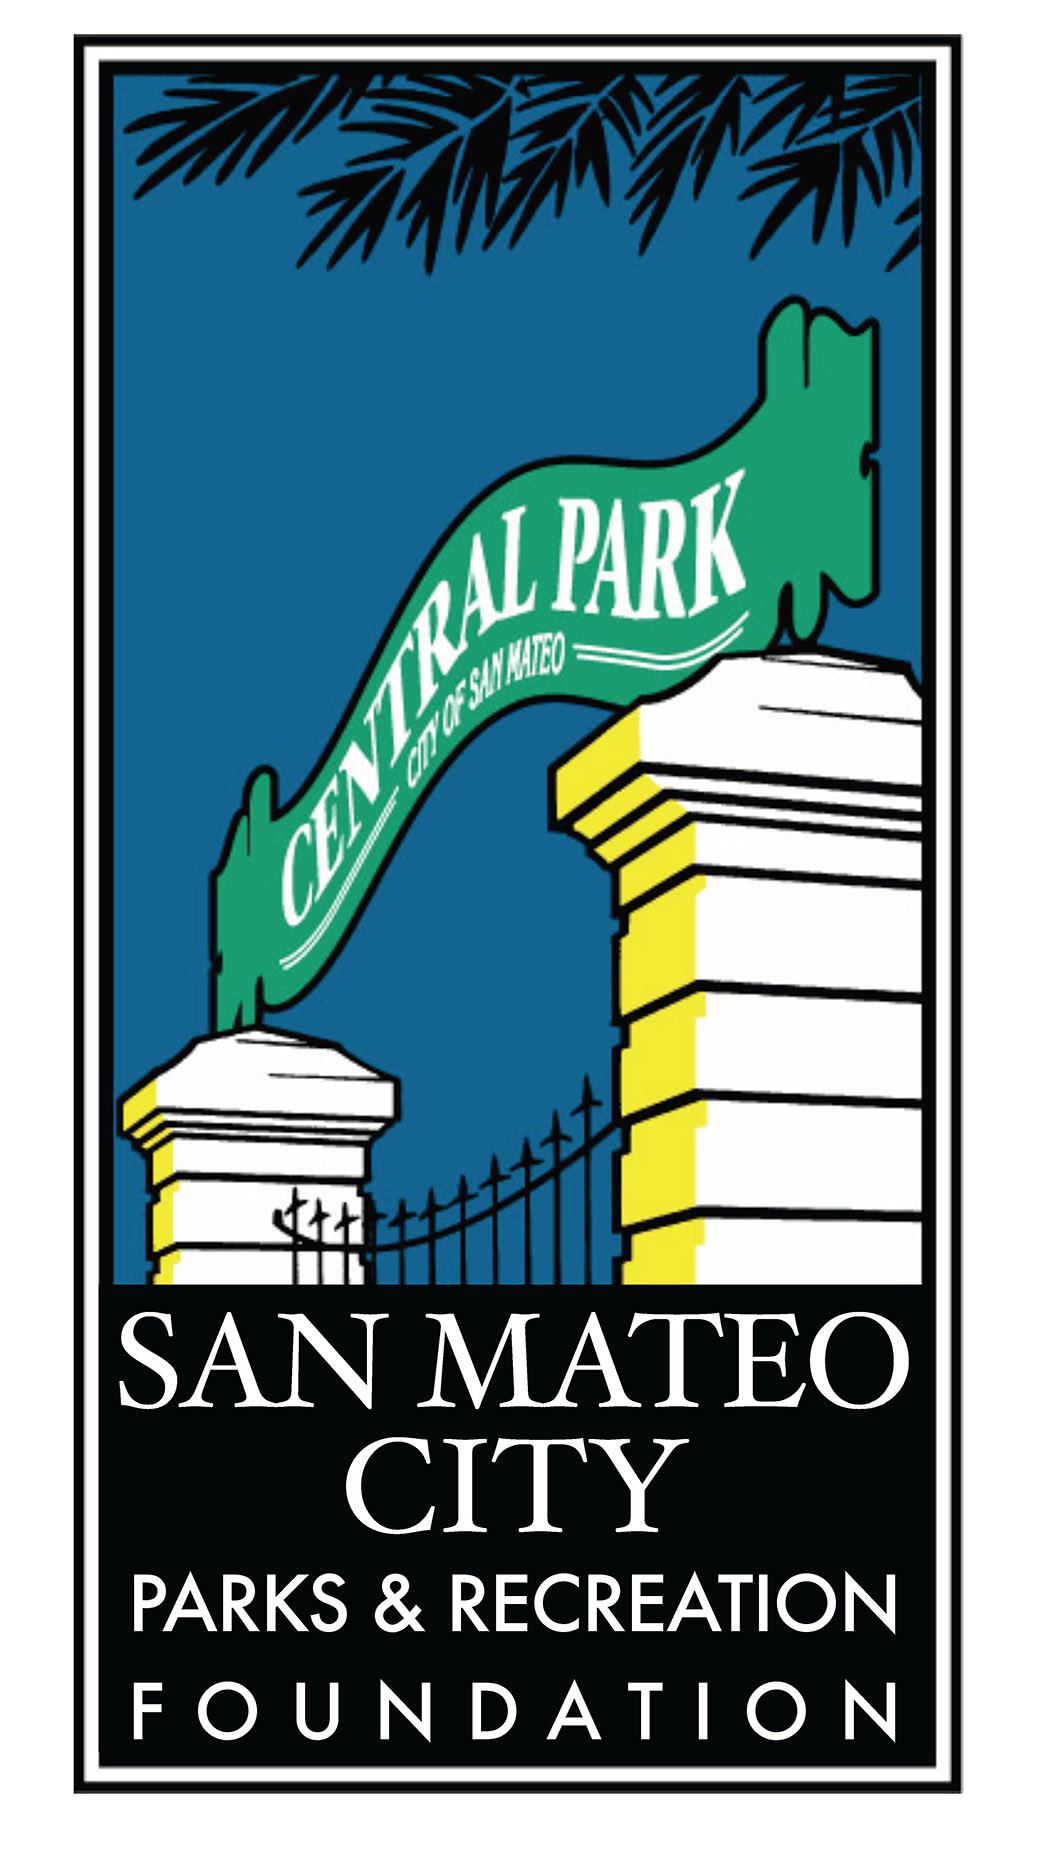 San Mateo City Parks and Recreation Foundation